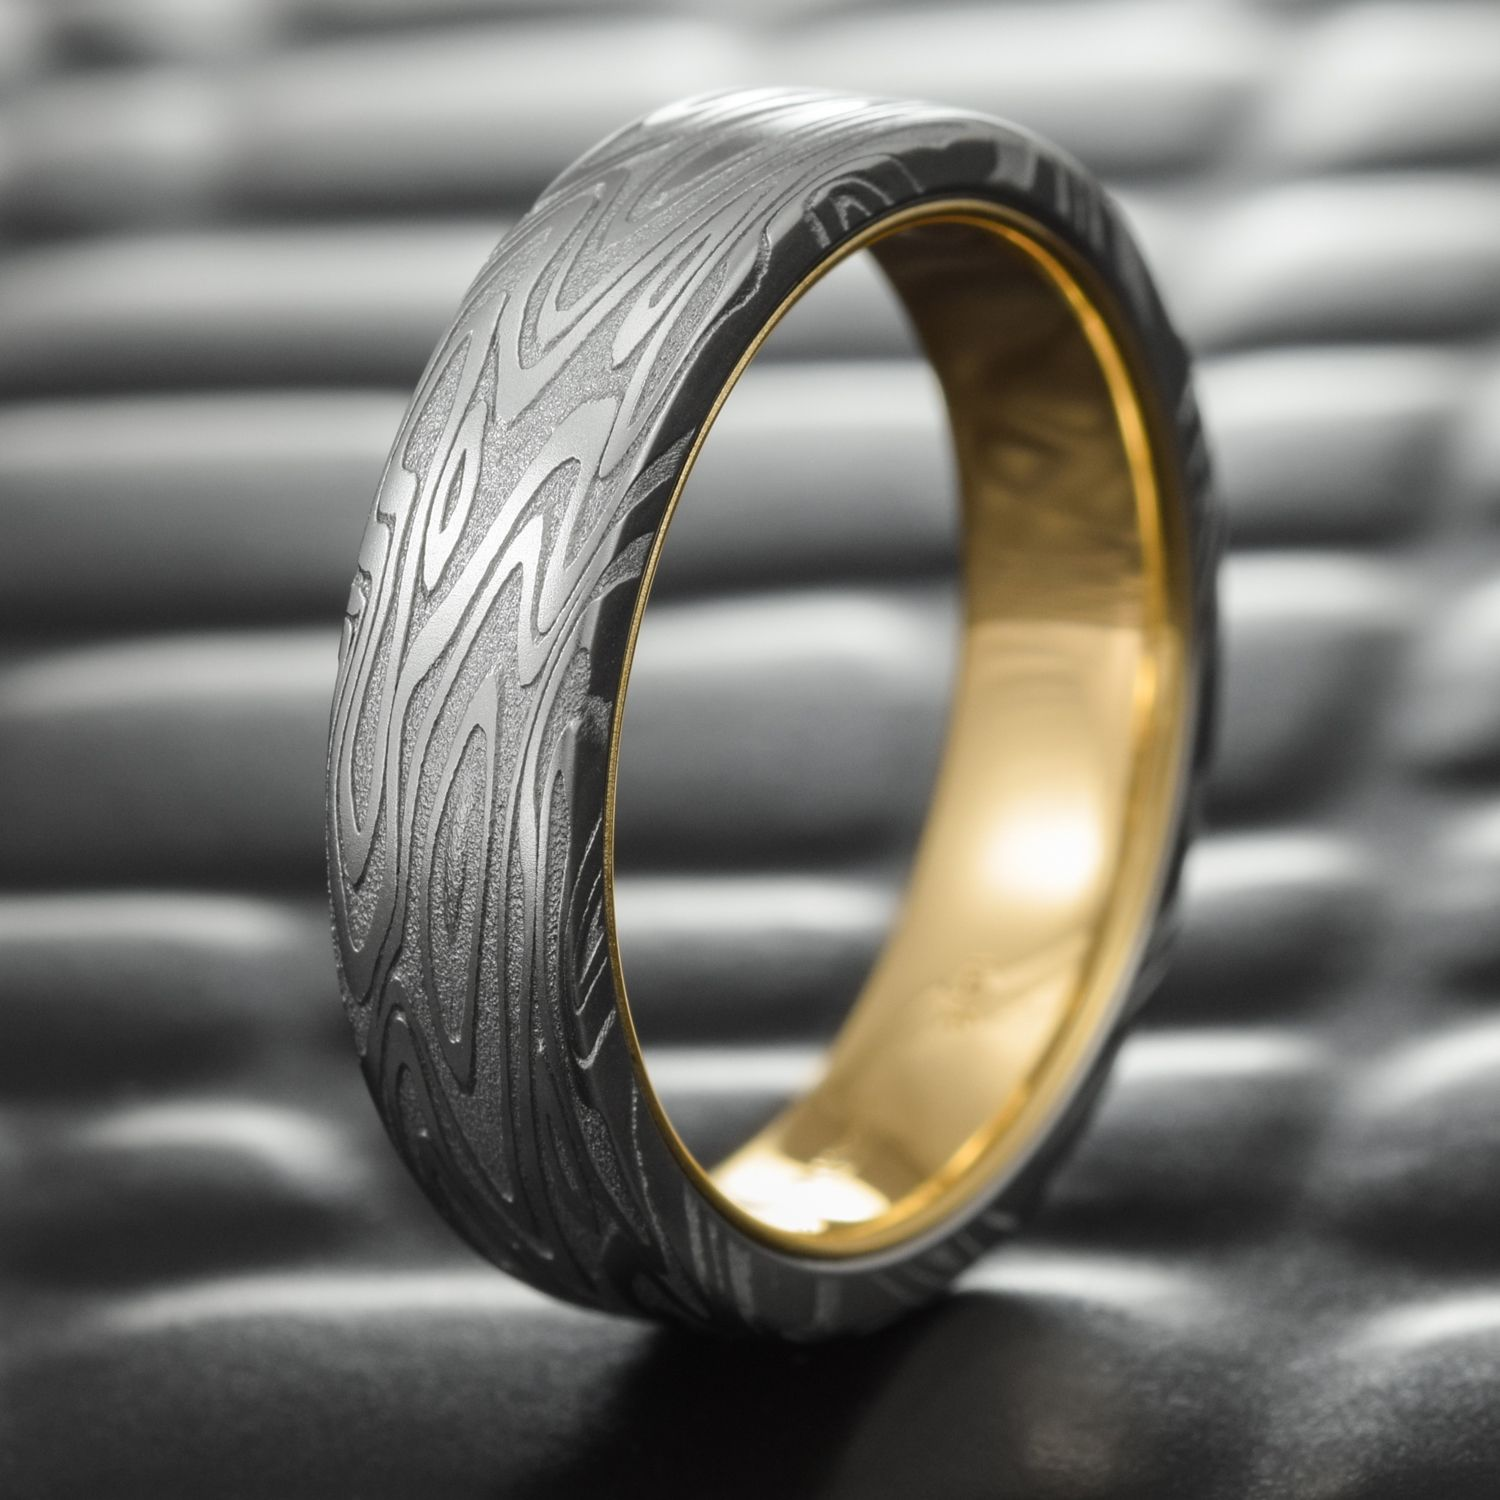 Damascus Steel Wedding Band By Steven Jacob Unique Gold Liner Ring At Mokume